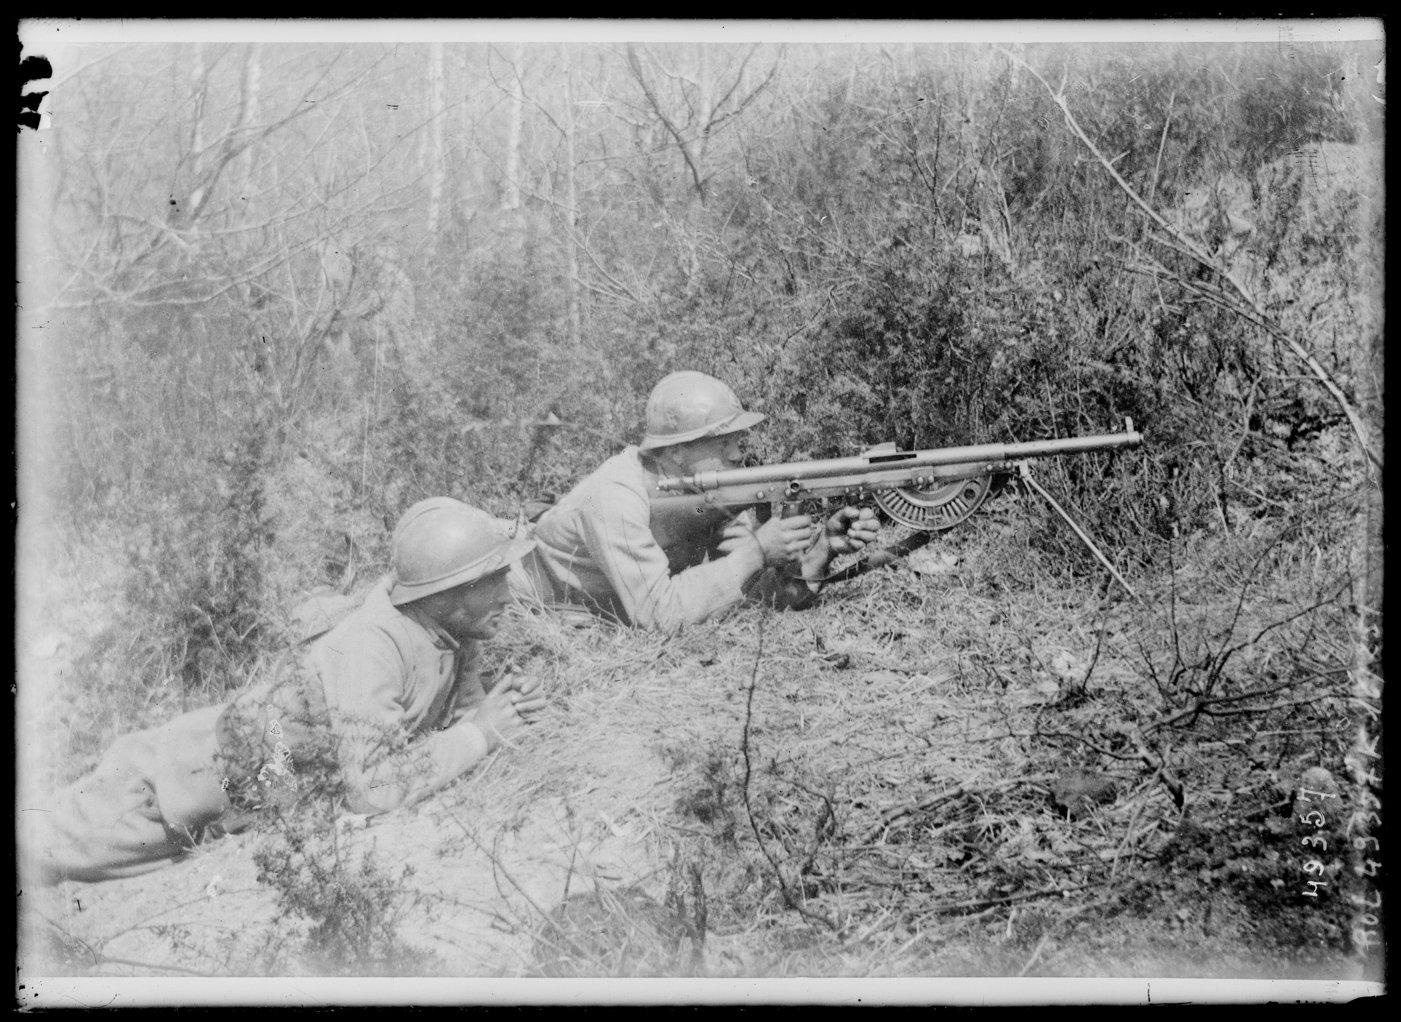 An innovation of the second half of the war, the French Chauchat allowed the infantry to keep moving and firing during attacks.